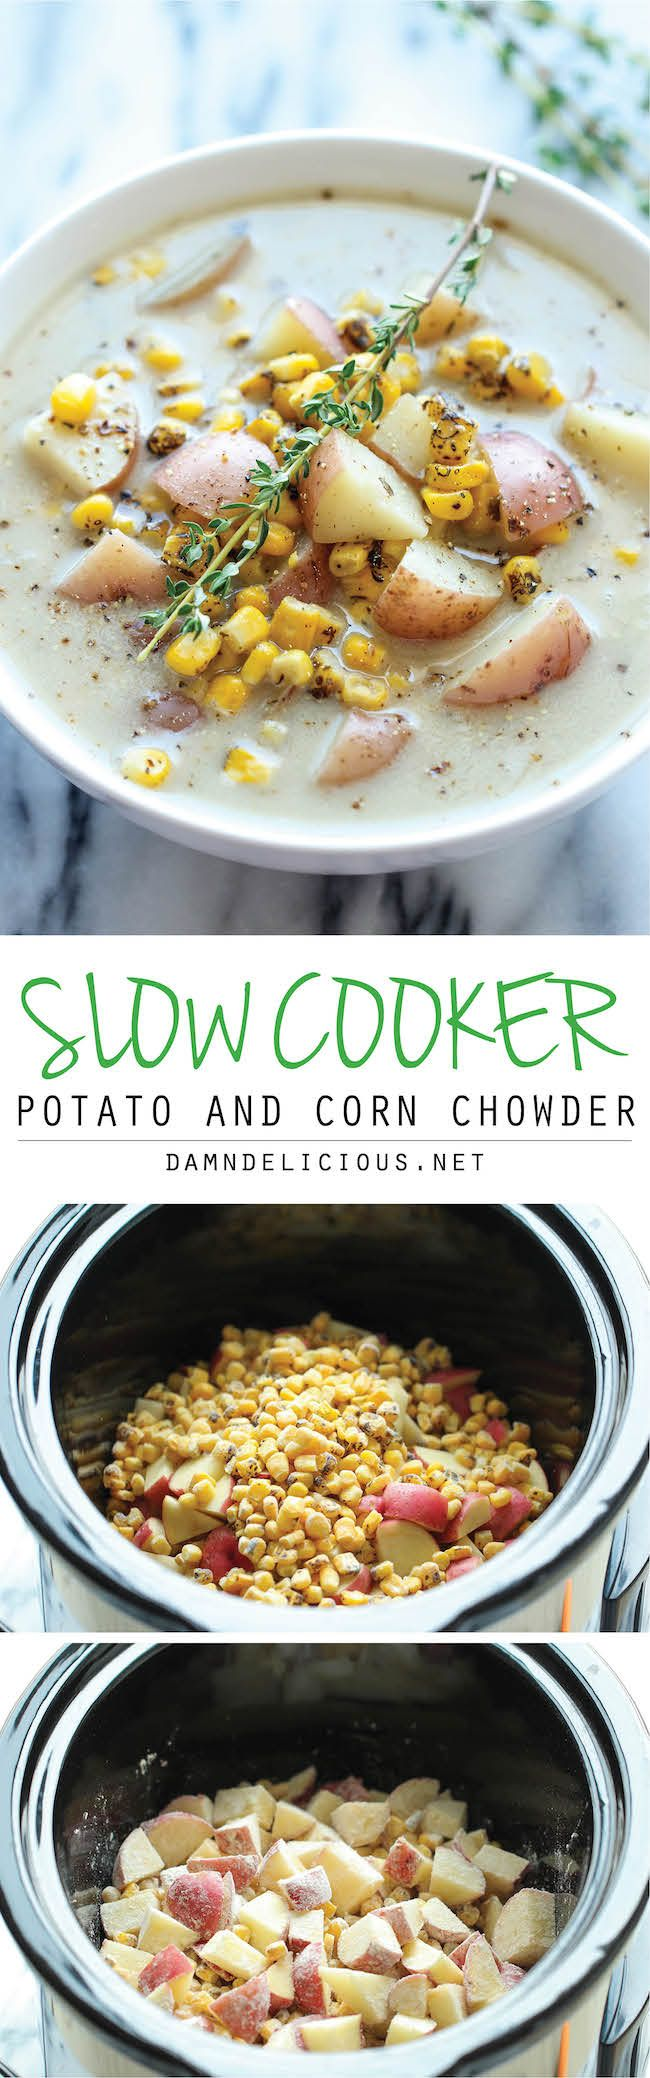 Slow Cooker Potato and Corn Chowder - The easiest chowder you will ever make. Throw everything in the crockpot and youre set! #vegetarian #recipe #veggie #healthy #recipes